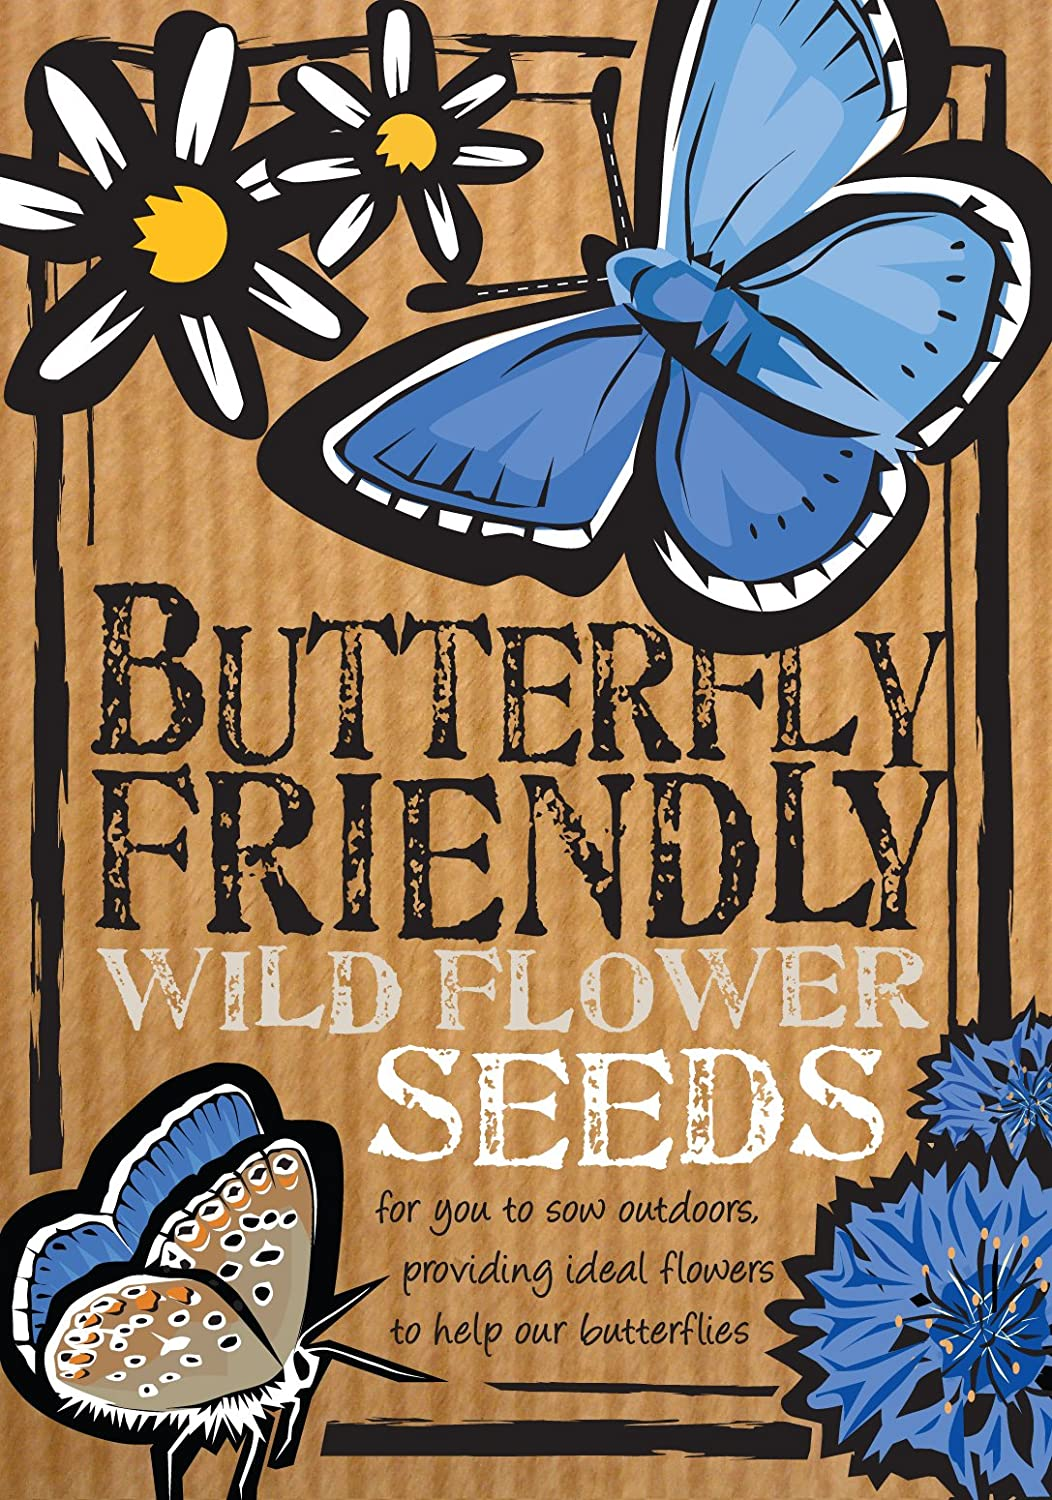 Butterfly Friendly Wild Flower Seeds,        Beautiful Flowers In Many  Colours, Great Gardener Gift Or Stocking Filler, Over 1000 Seeds Per  Packet, ...